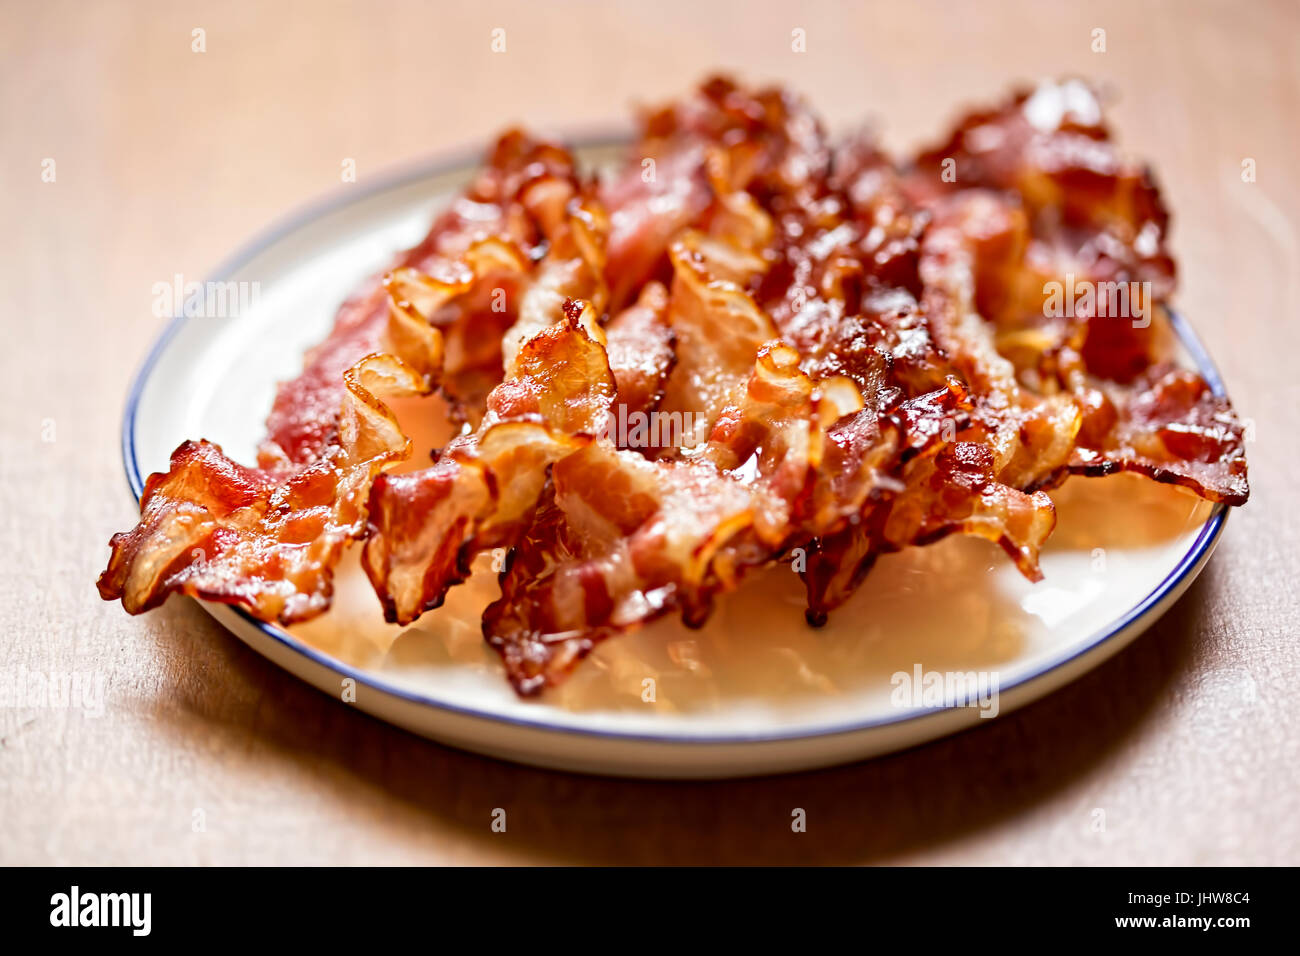 Streaky fried bacon rashers - Stock Image